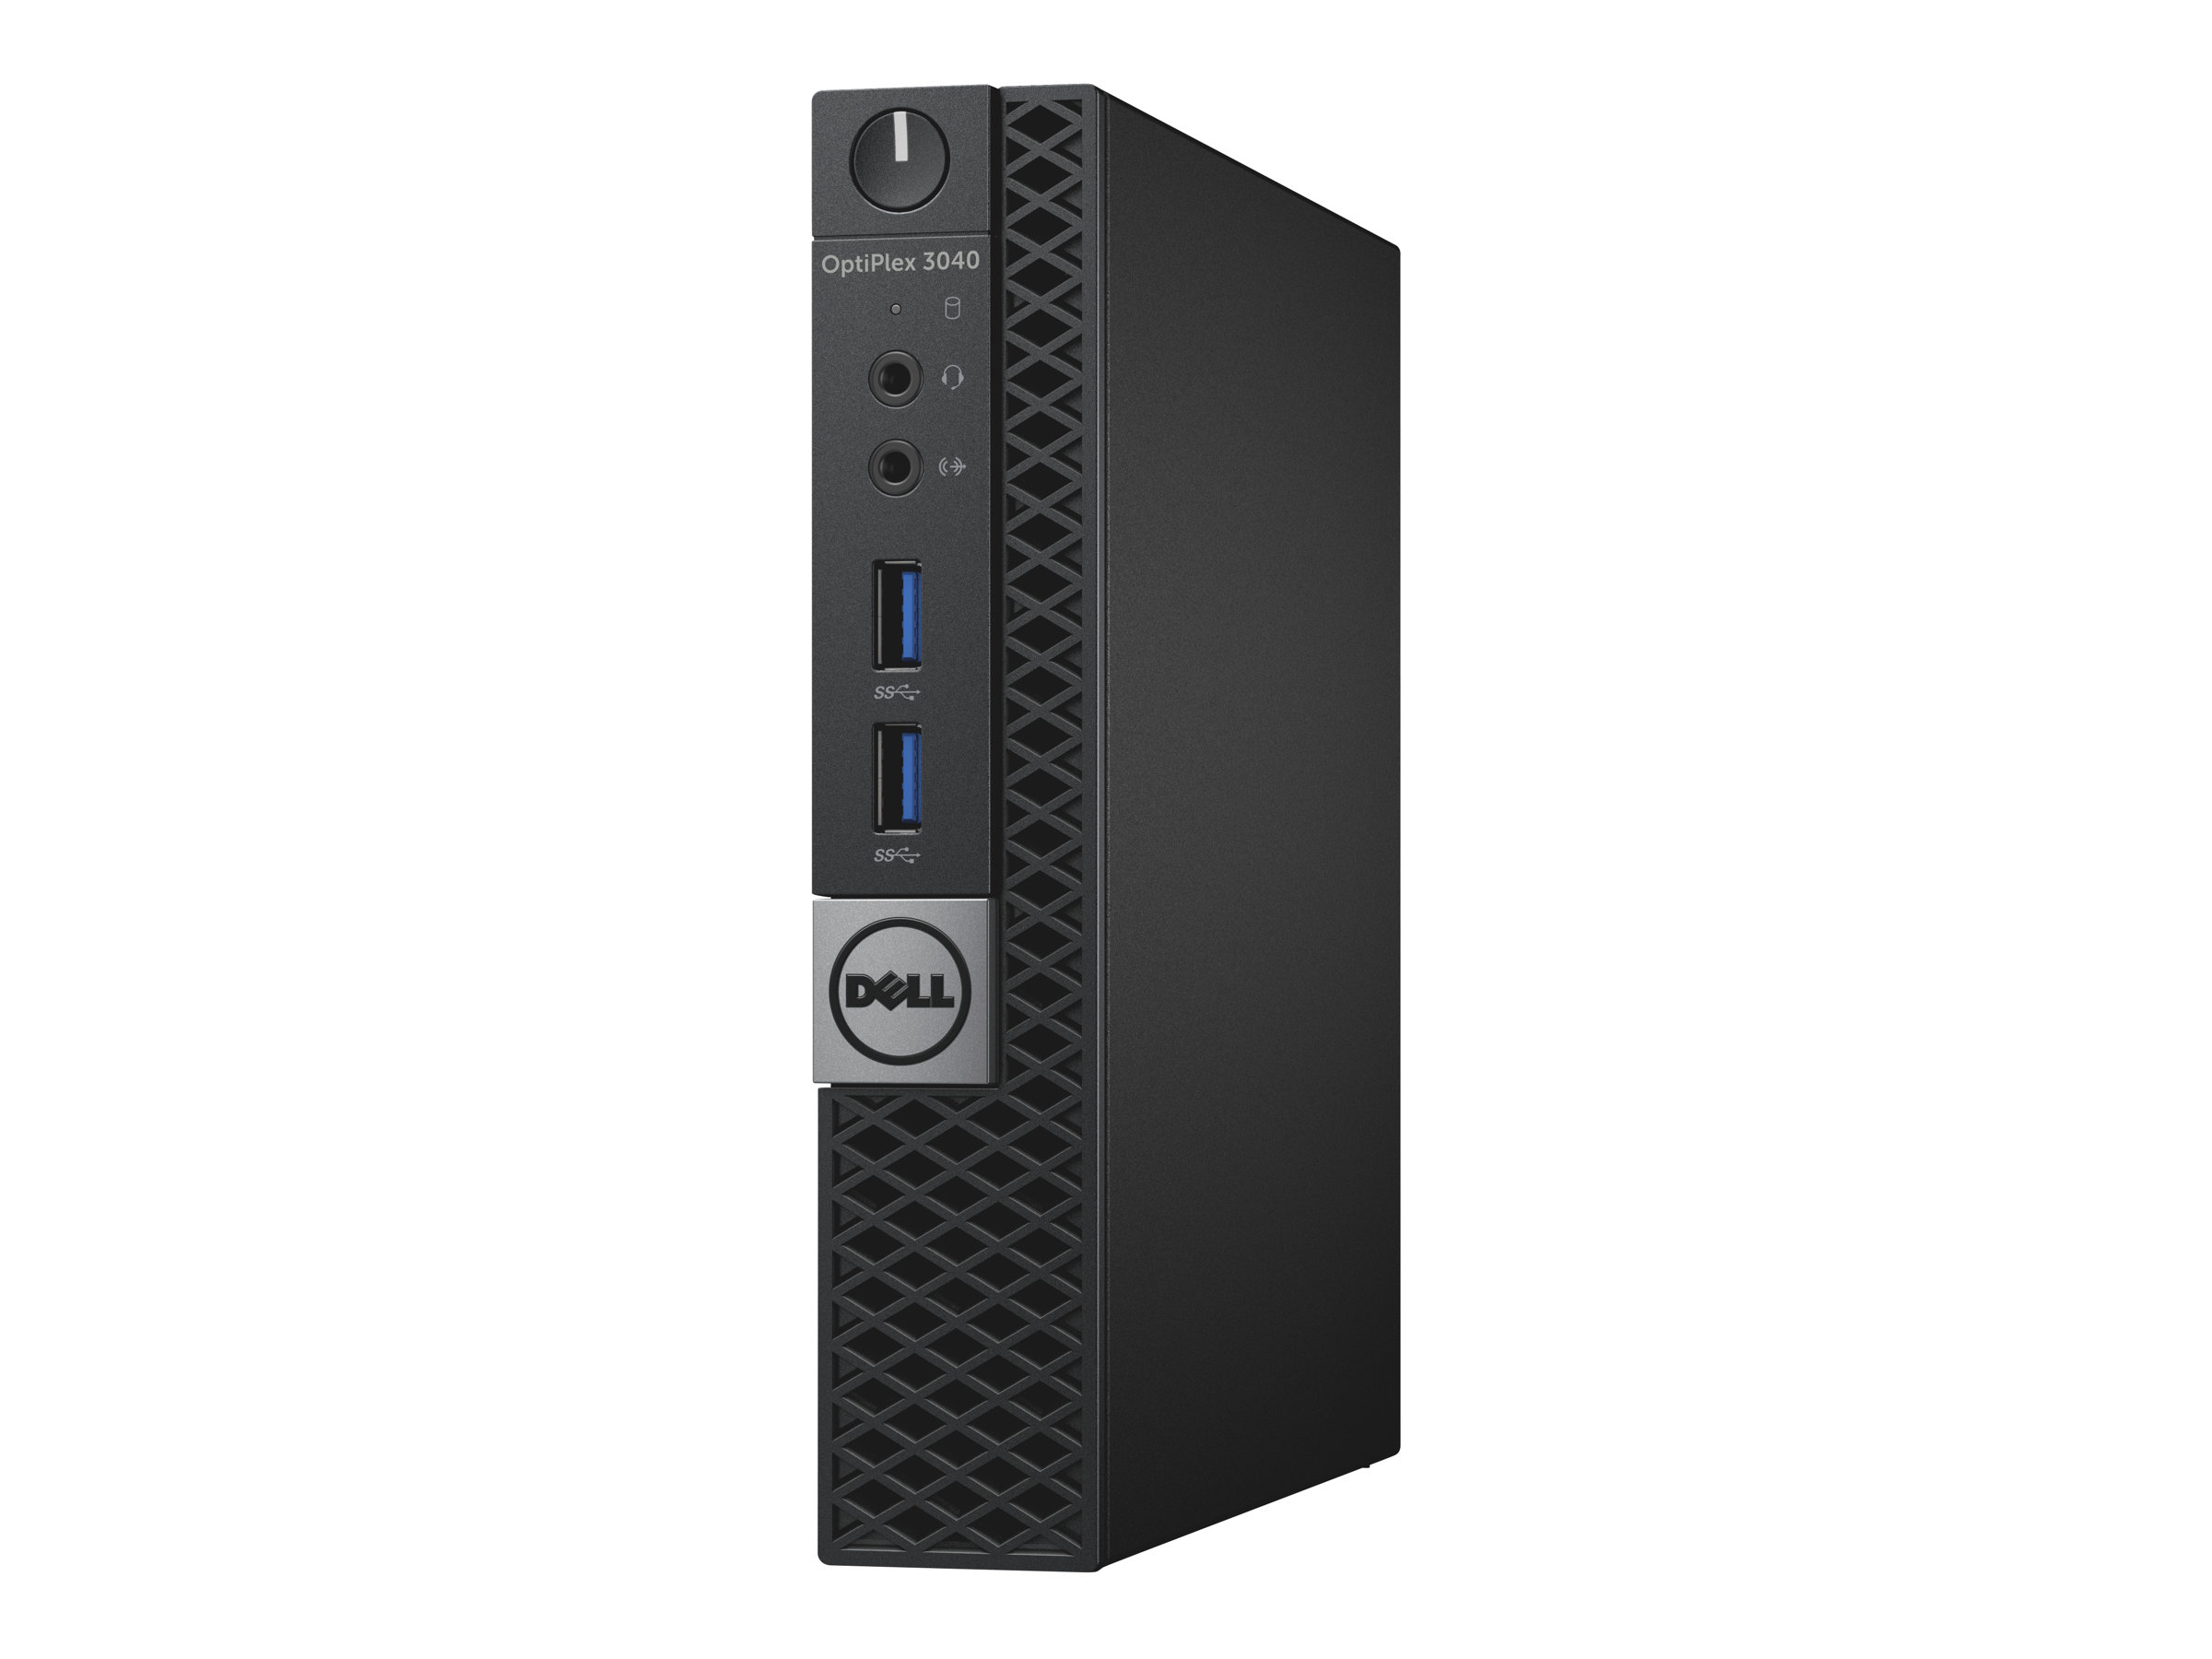 Dell OptiPlex 3040 - Micro - 1 x Core i3 6100T / 3.2 GHz - RAM 4 GB - HDD 500 GB - HD Graphics 530